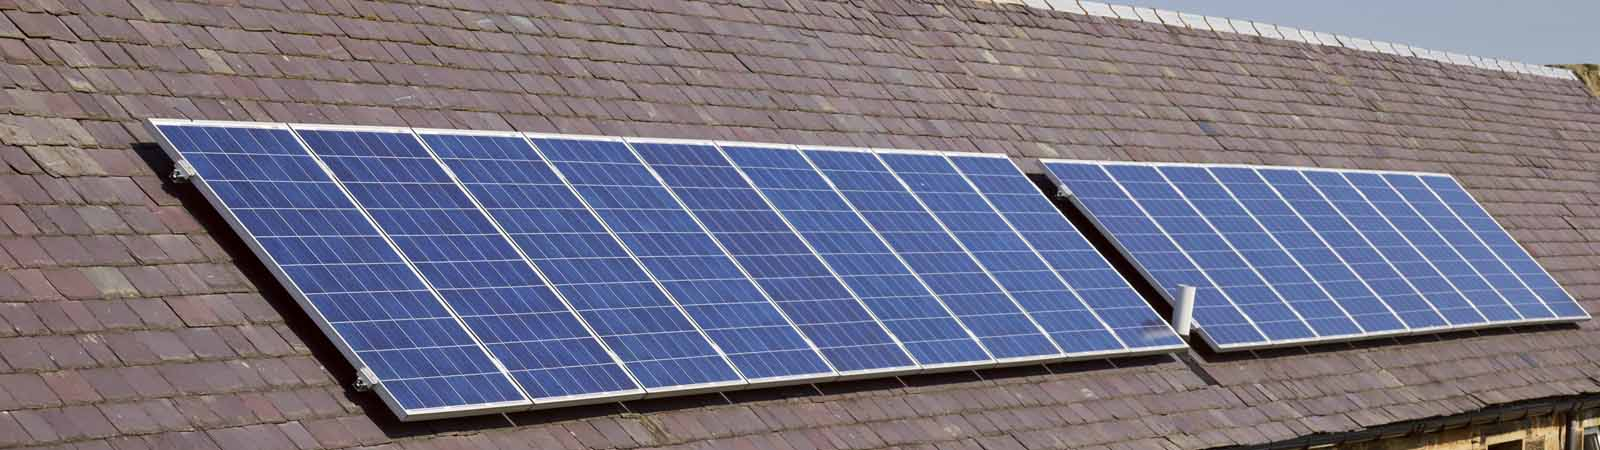 Solar PV on a roof